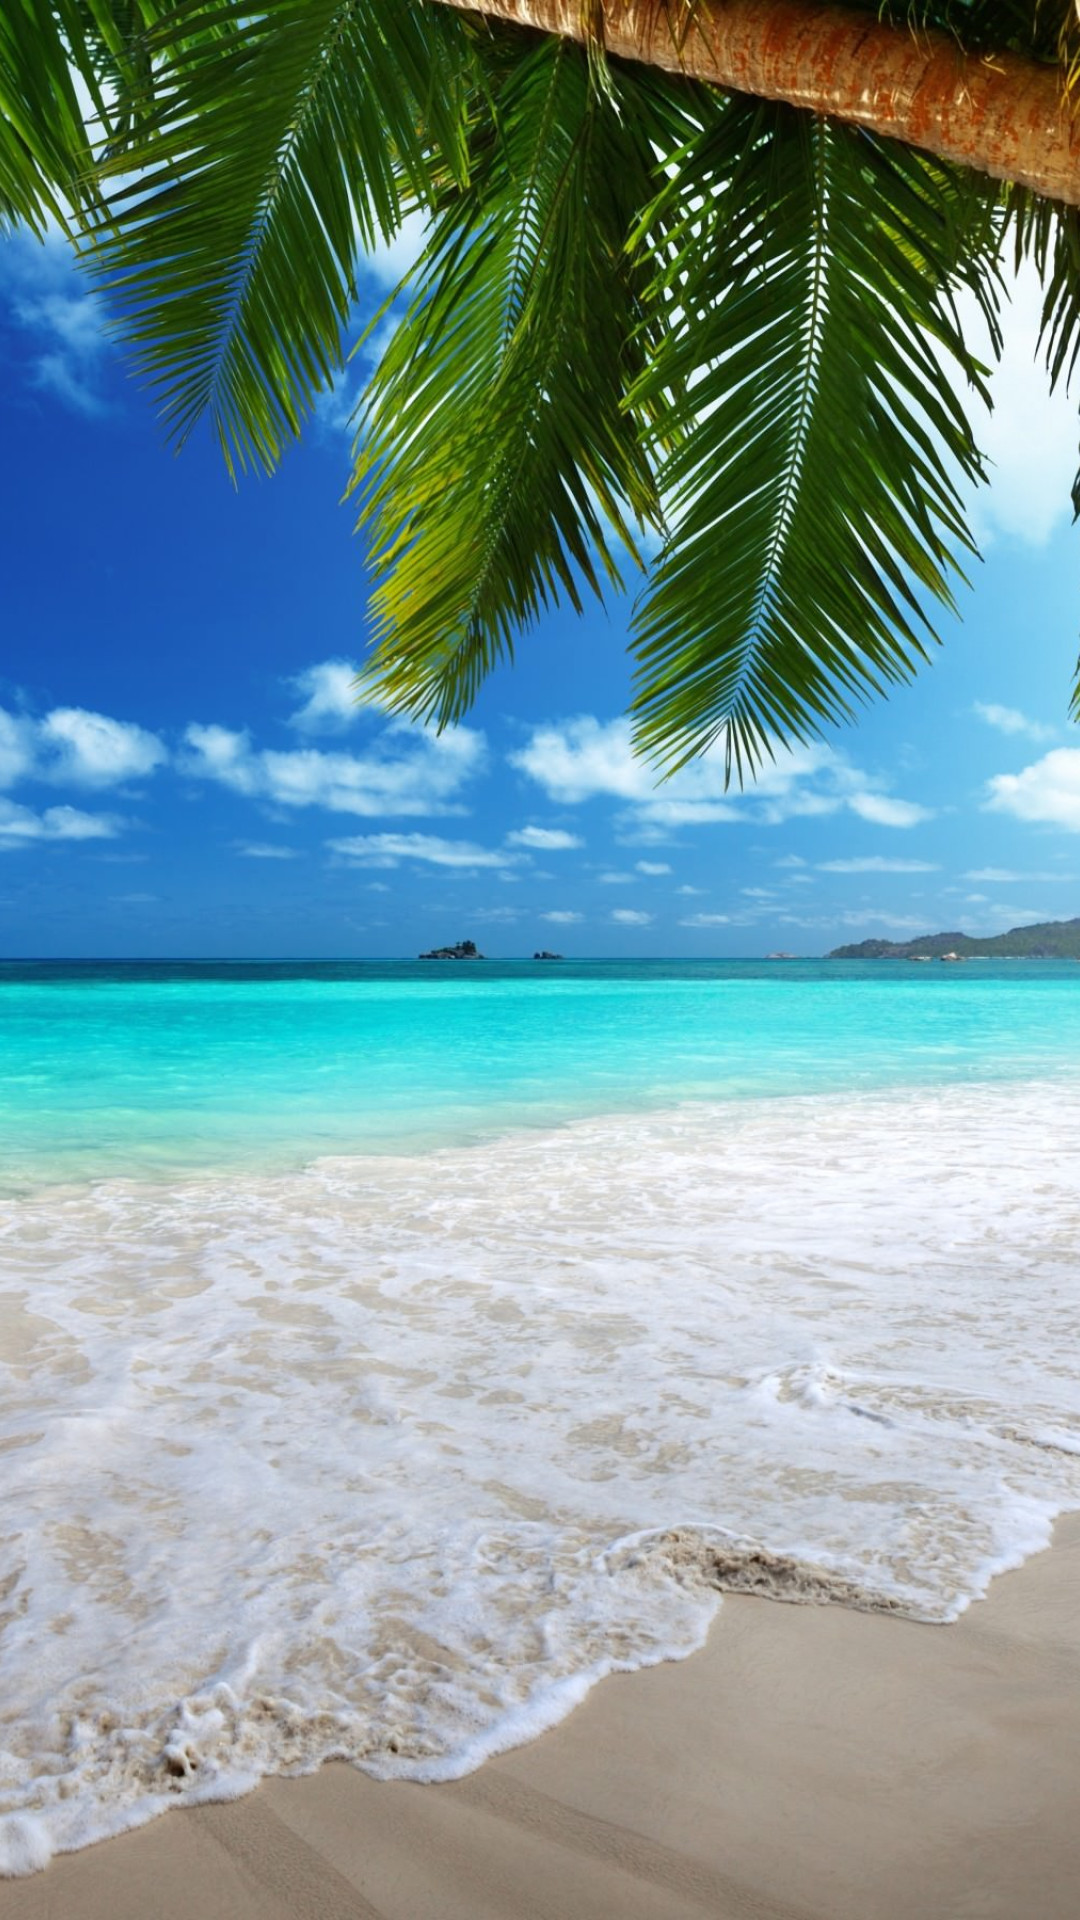 Beach Wallpaper For Iphone 5 75 Images